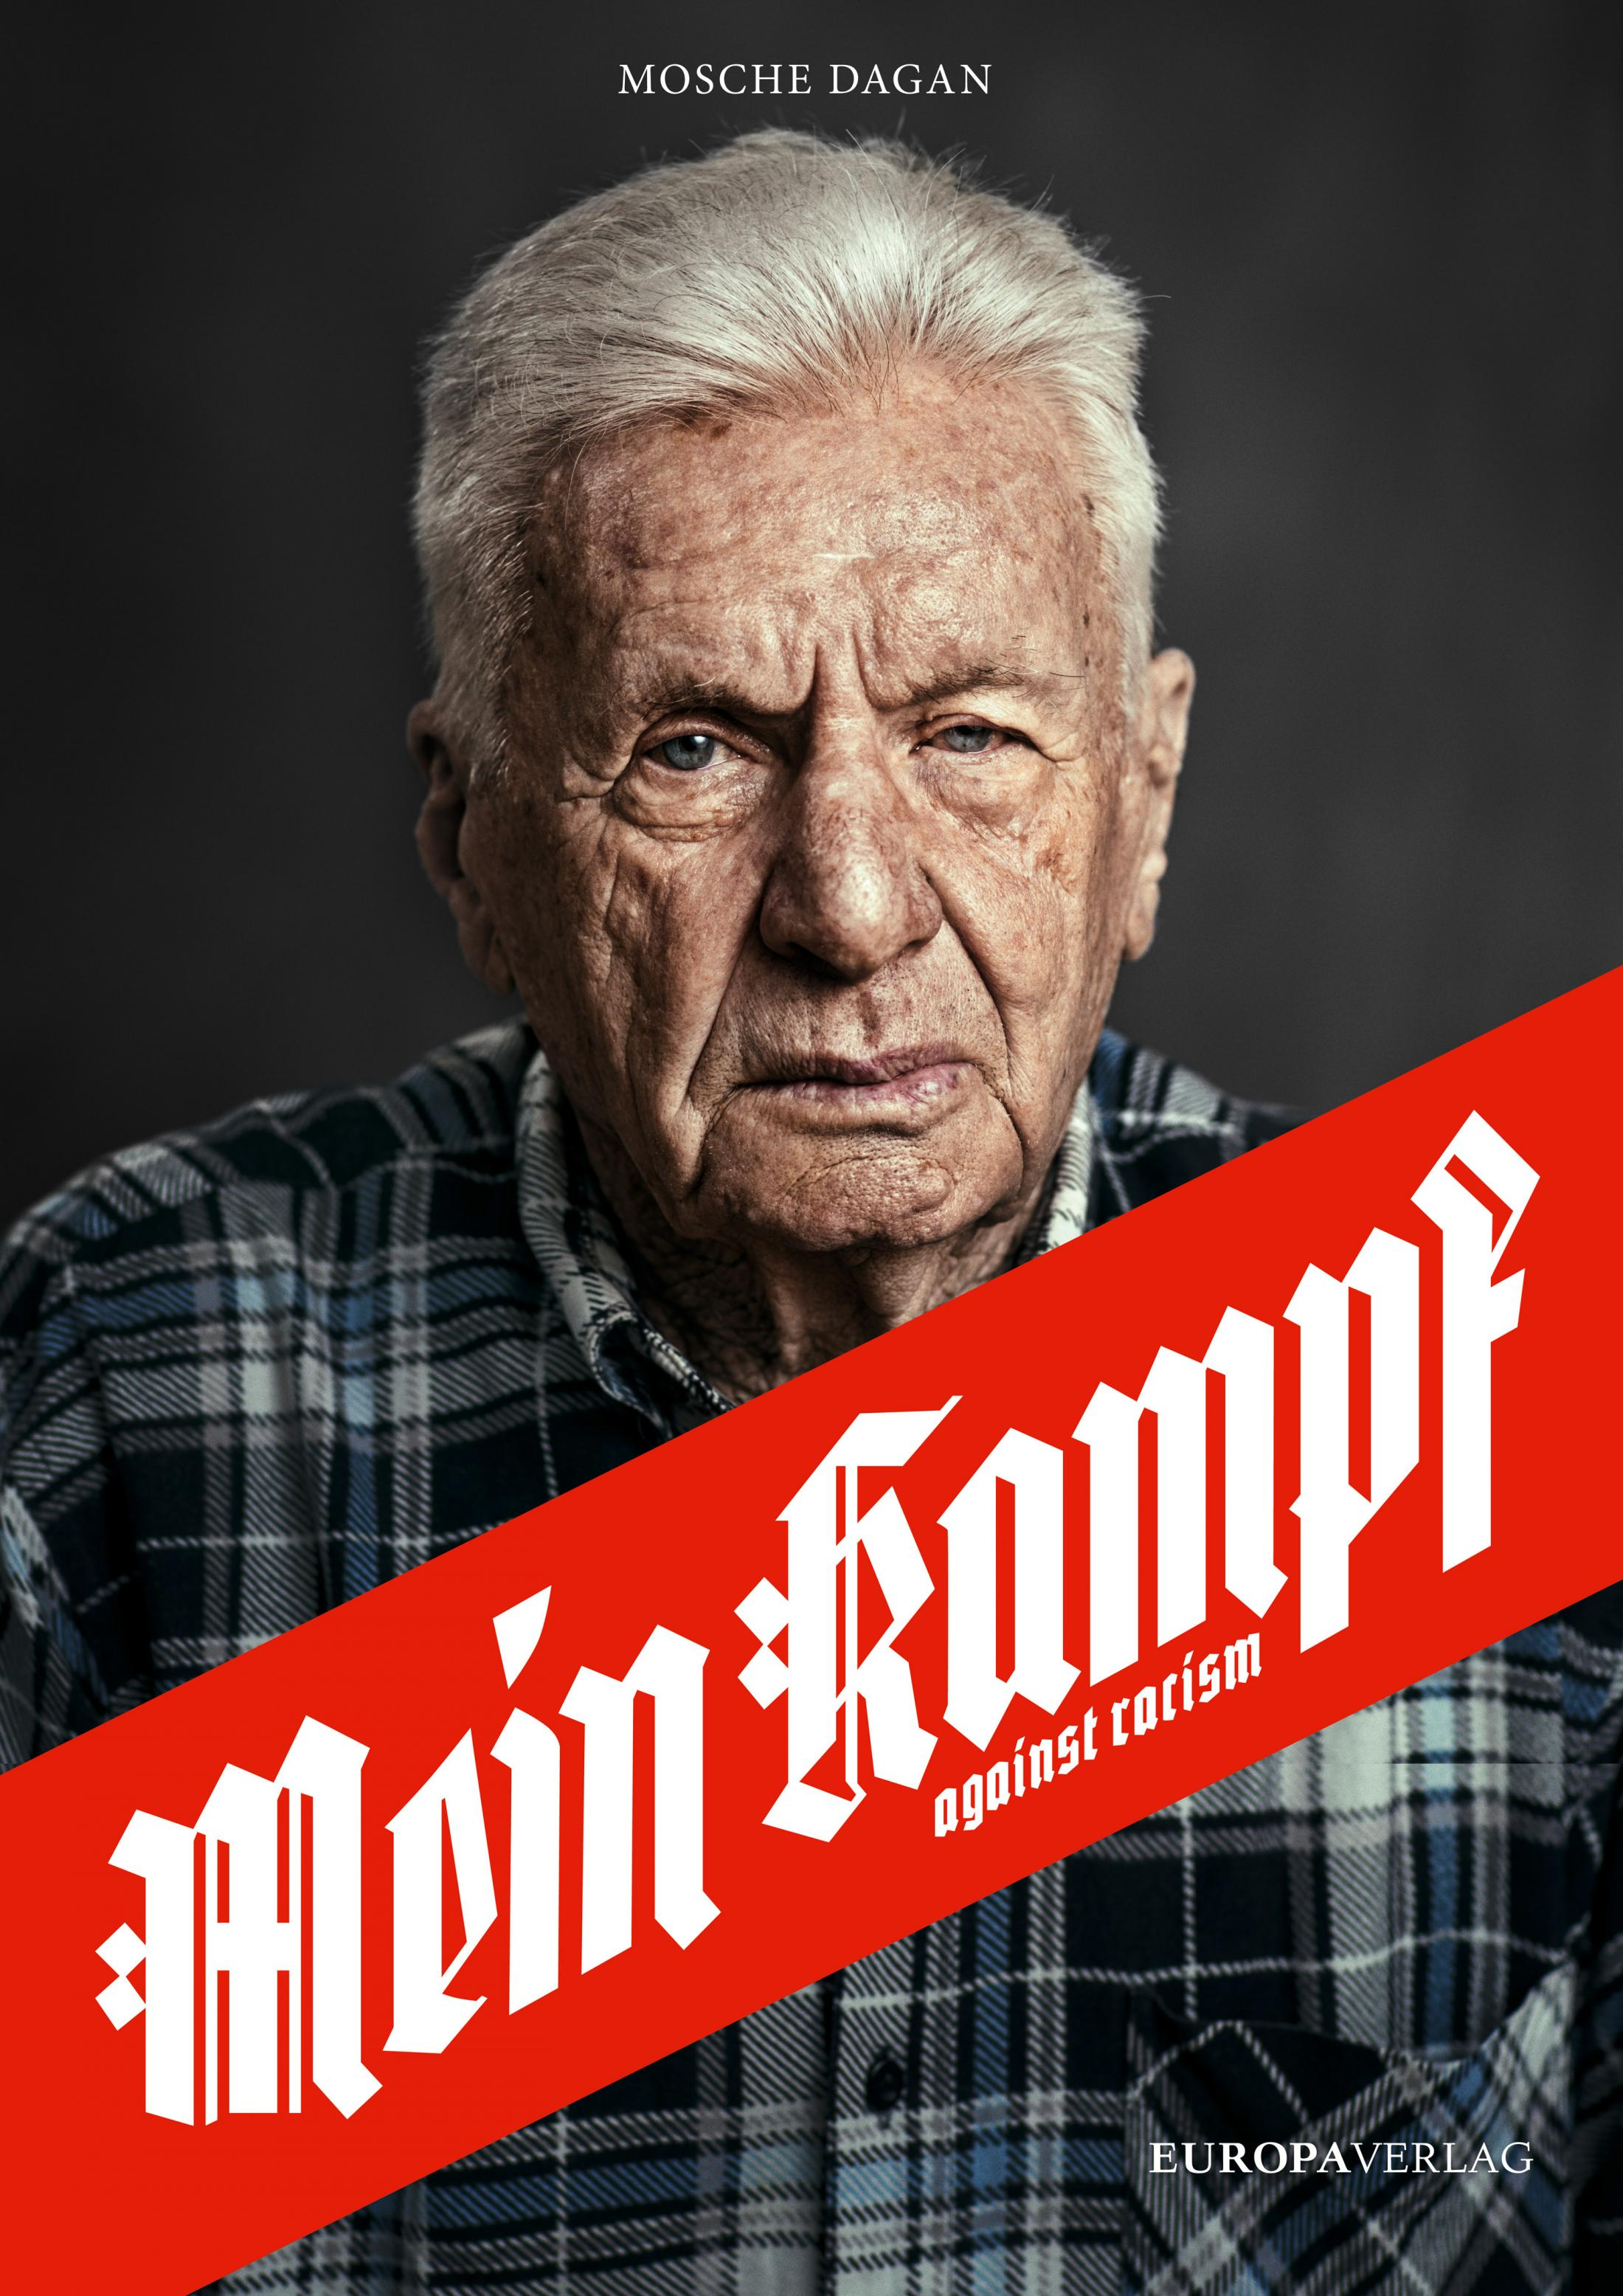 Thumbnail for Mein Kampf – against racism/ Print Ad:  Mosche Dagan